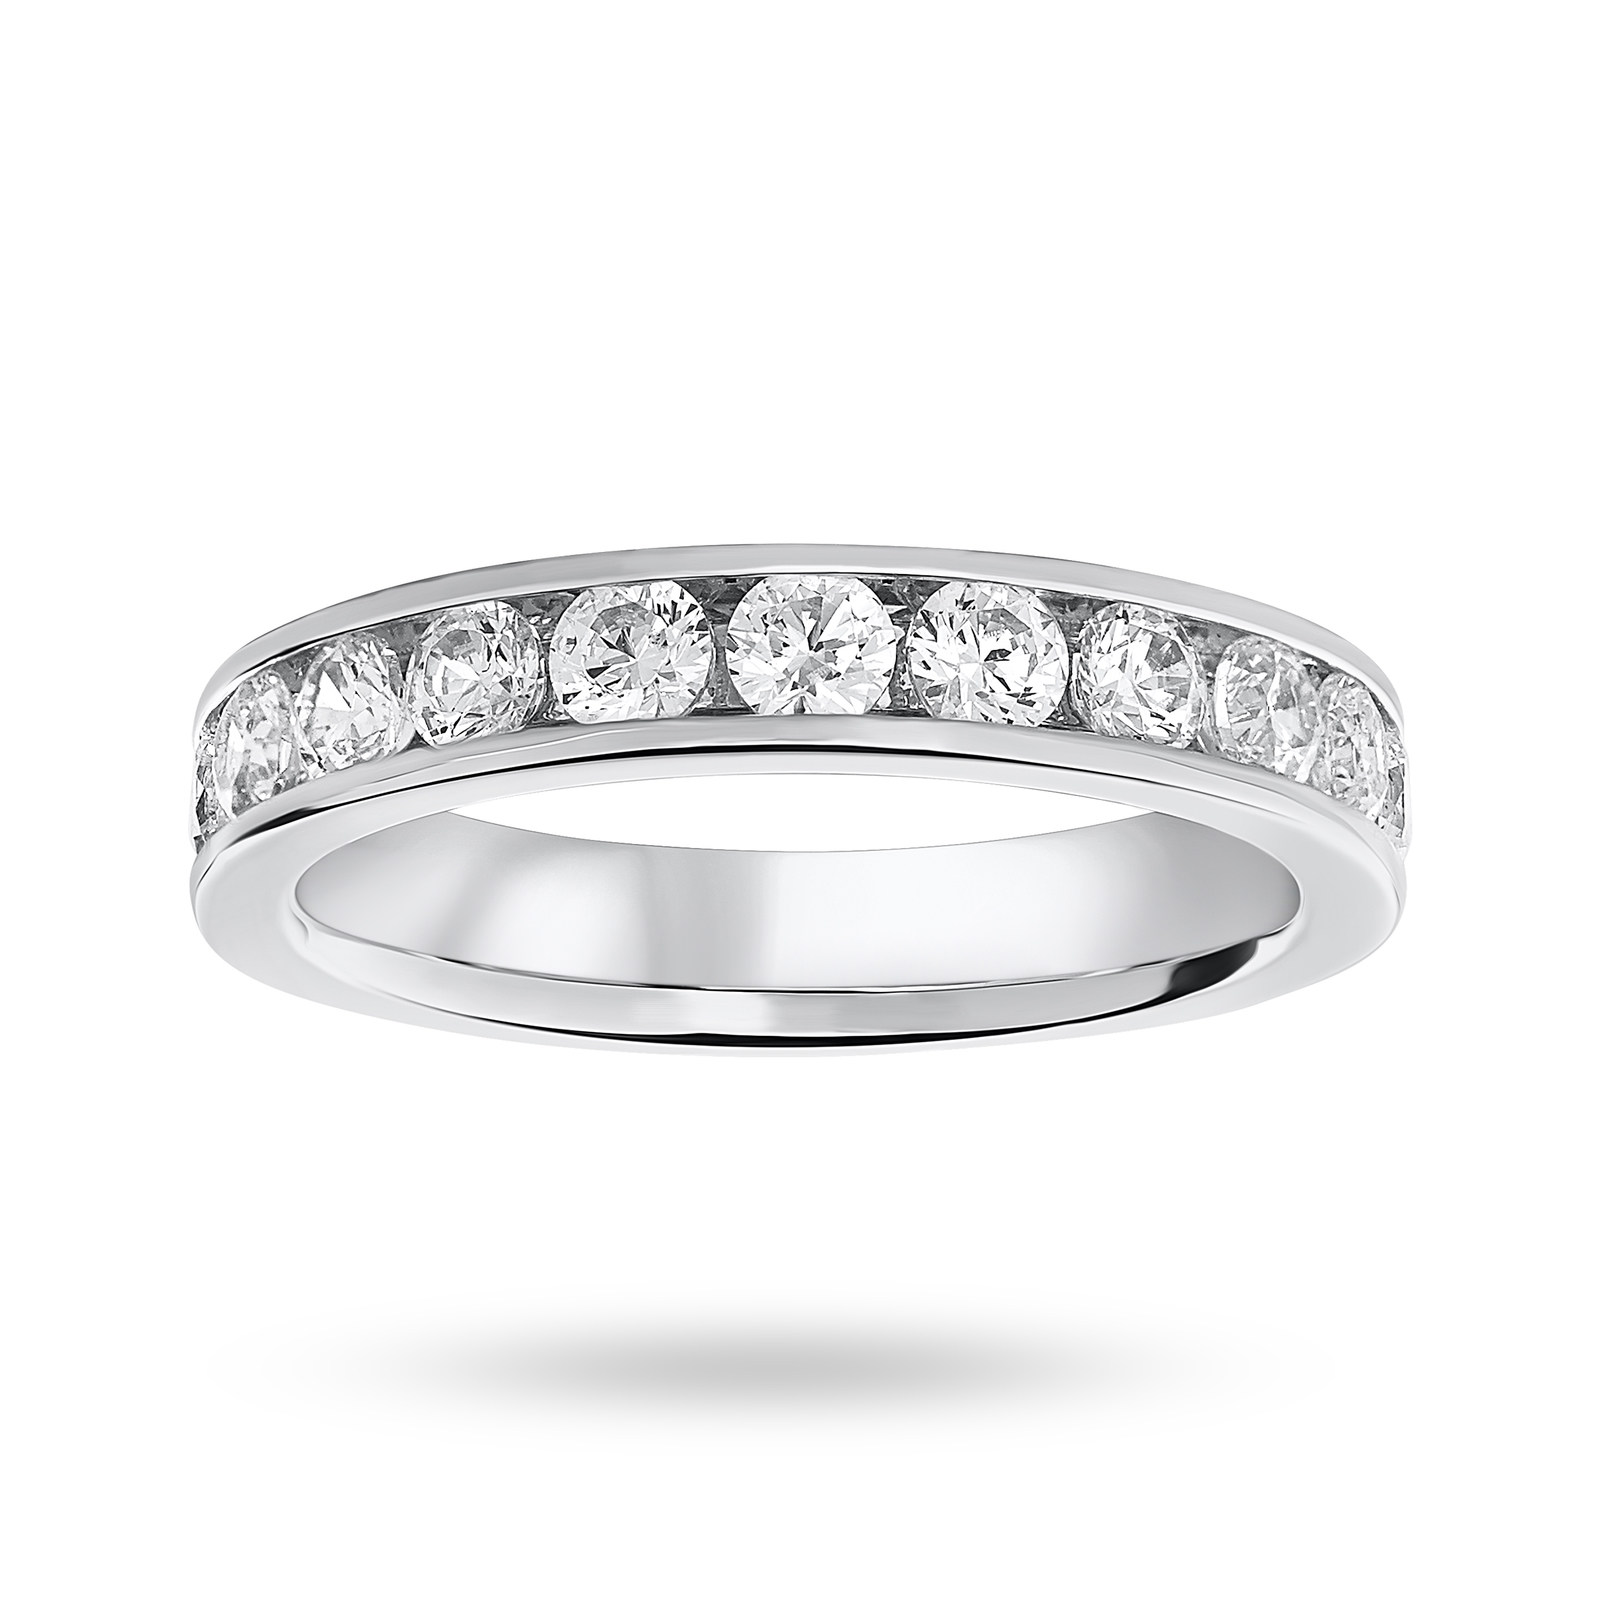 Platinum 1.00cttw Diamond Half Eternity Ring